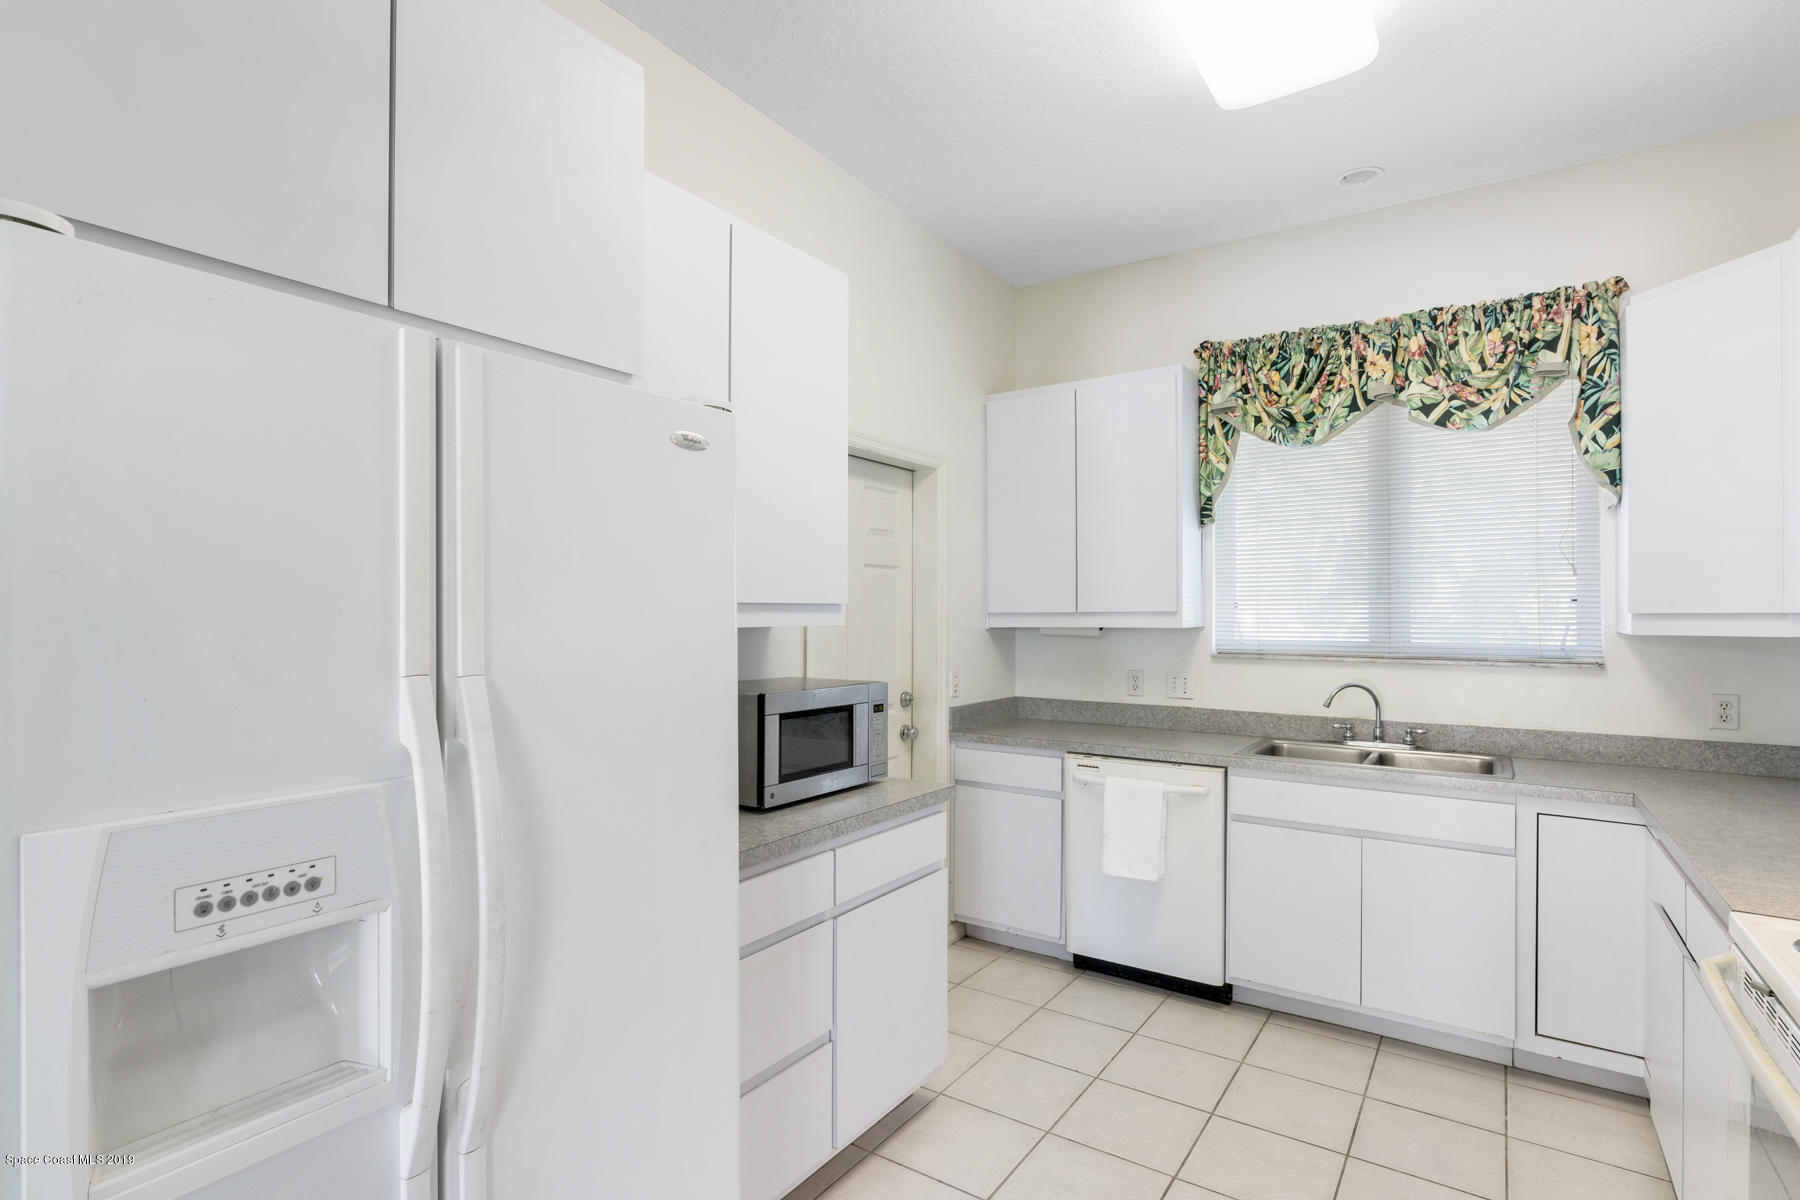 Additional photo for property listing at 3077 Rio Plumosa Melbourne, Florida 32903 United States